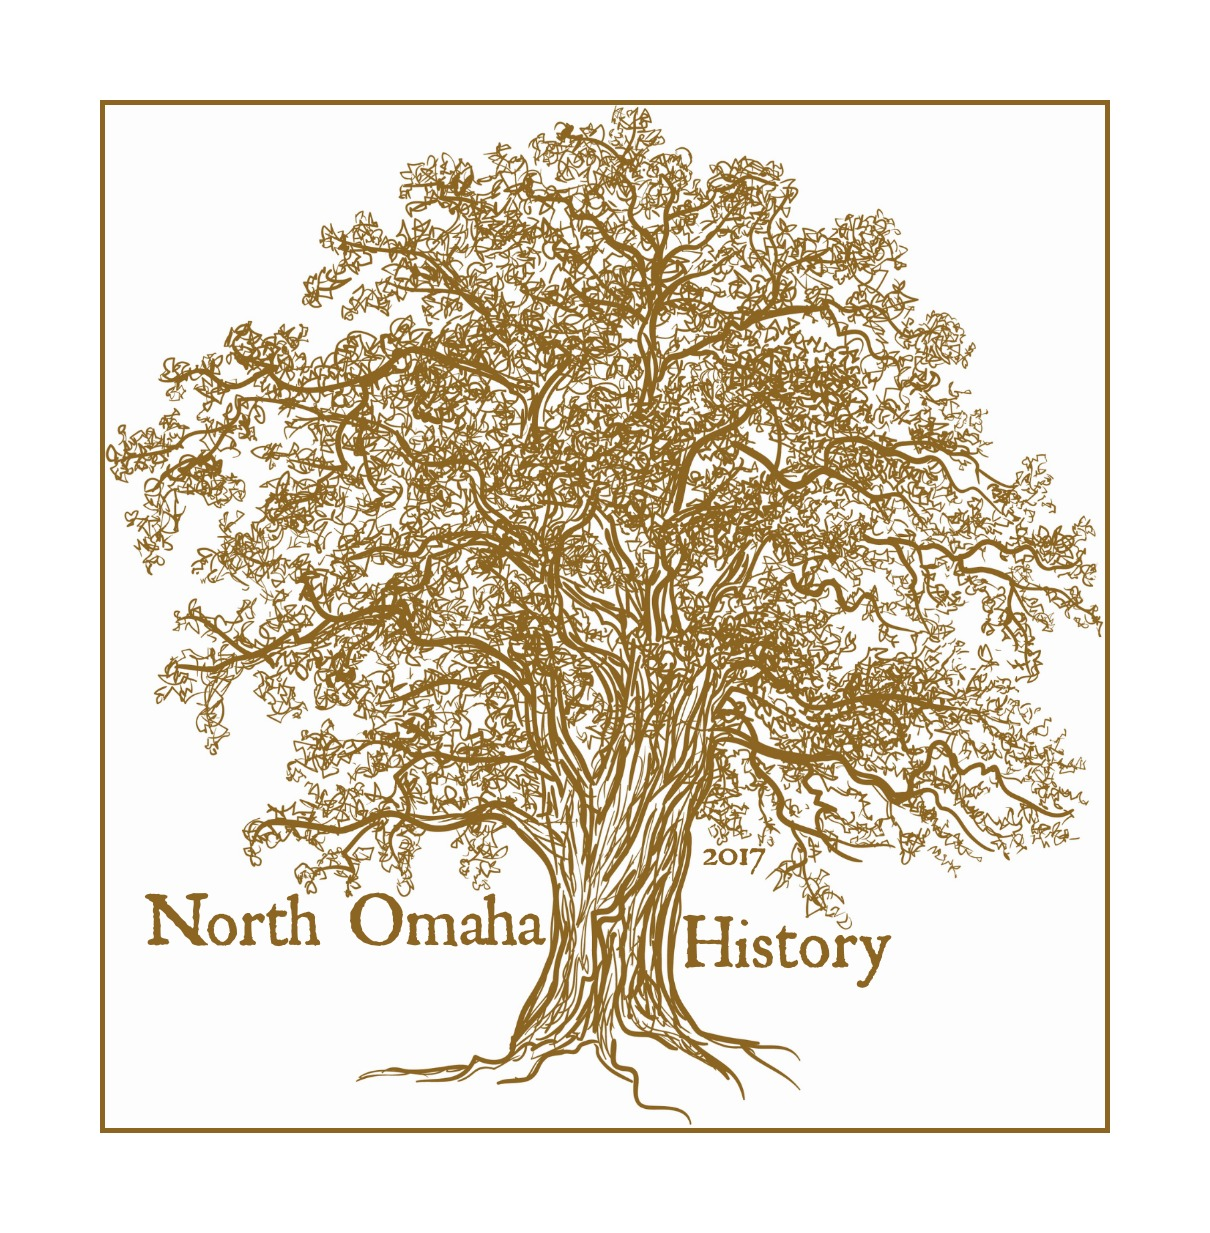 North Omaha History 2017 logo